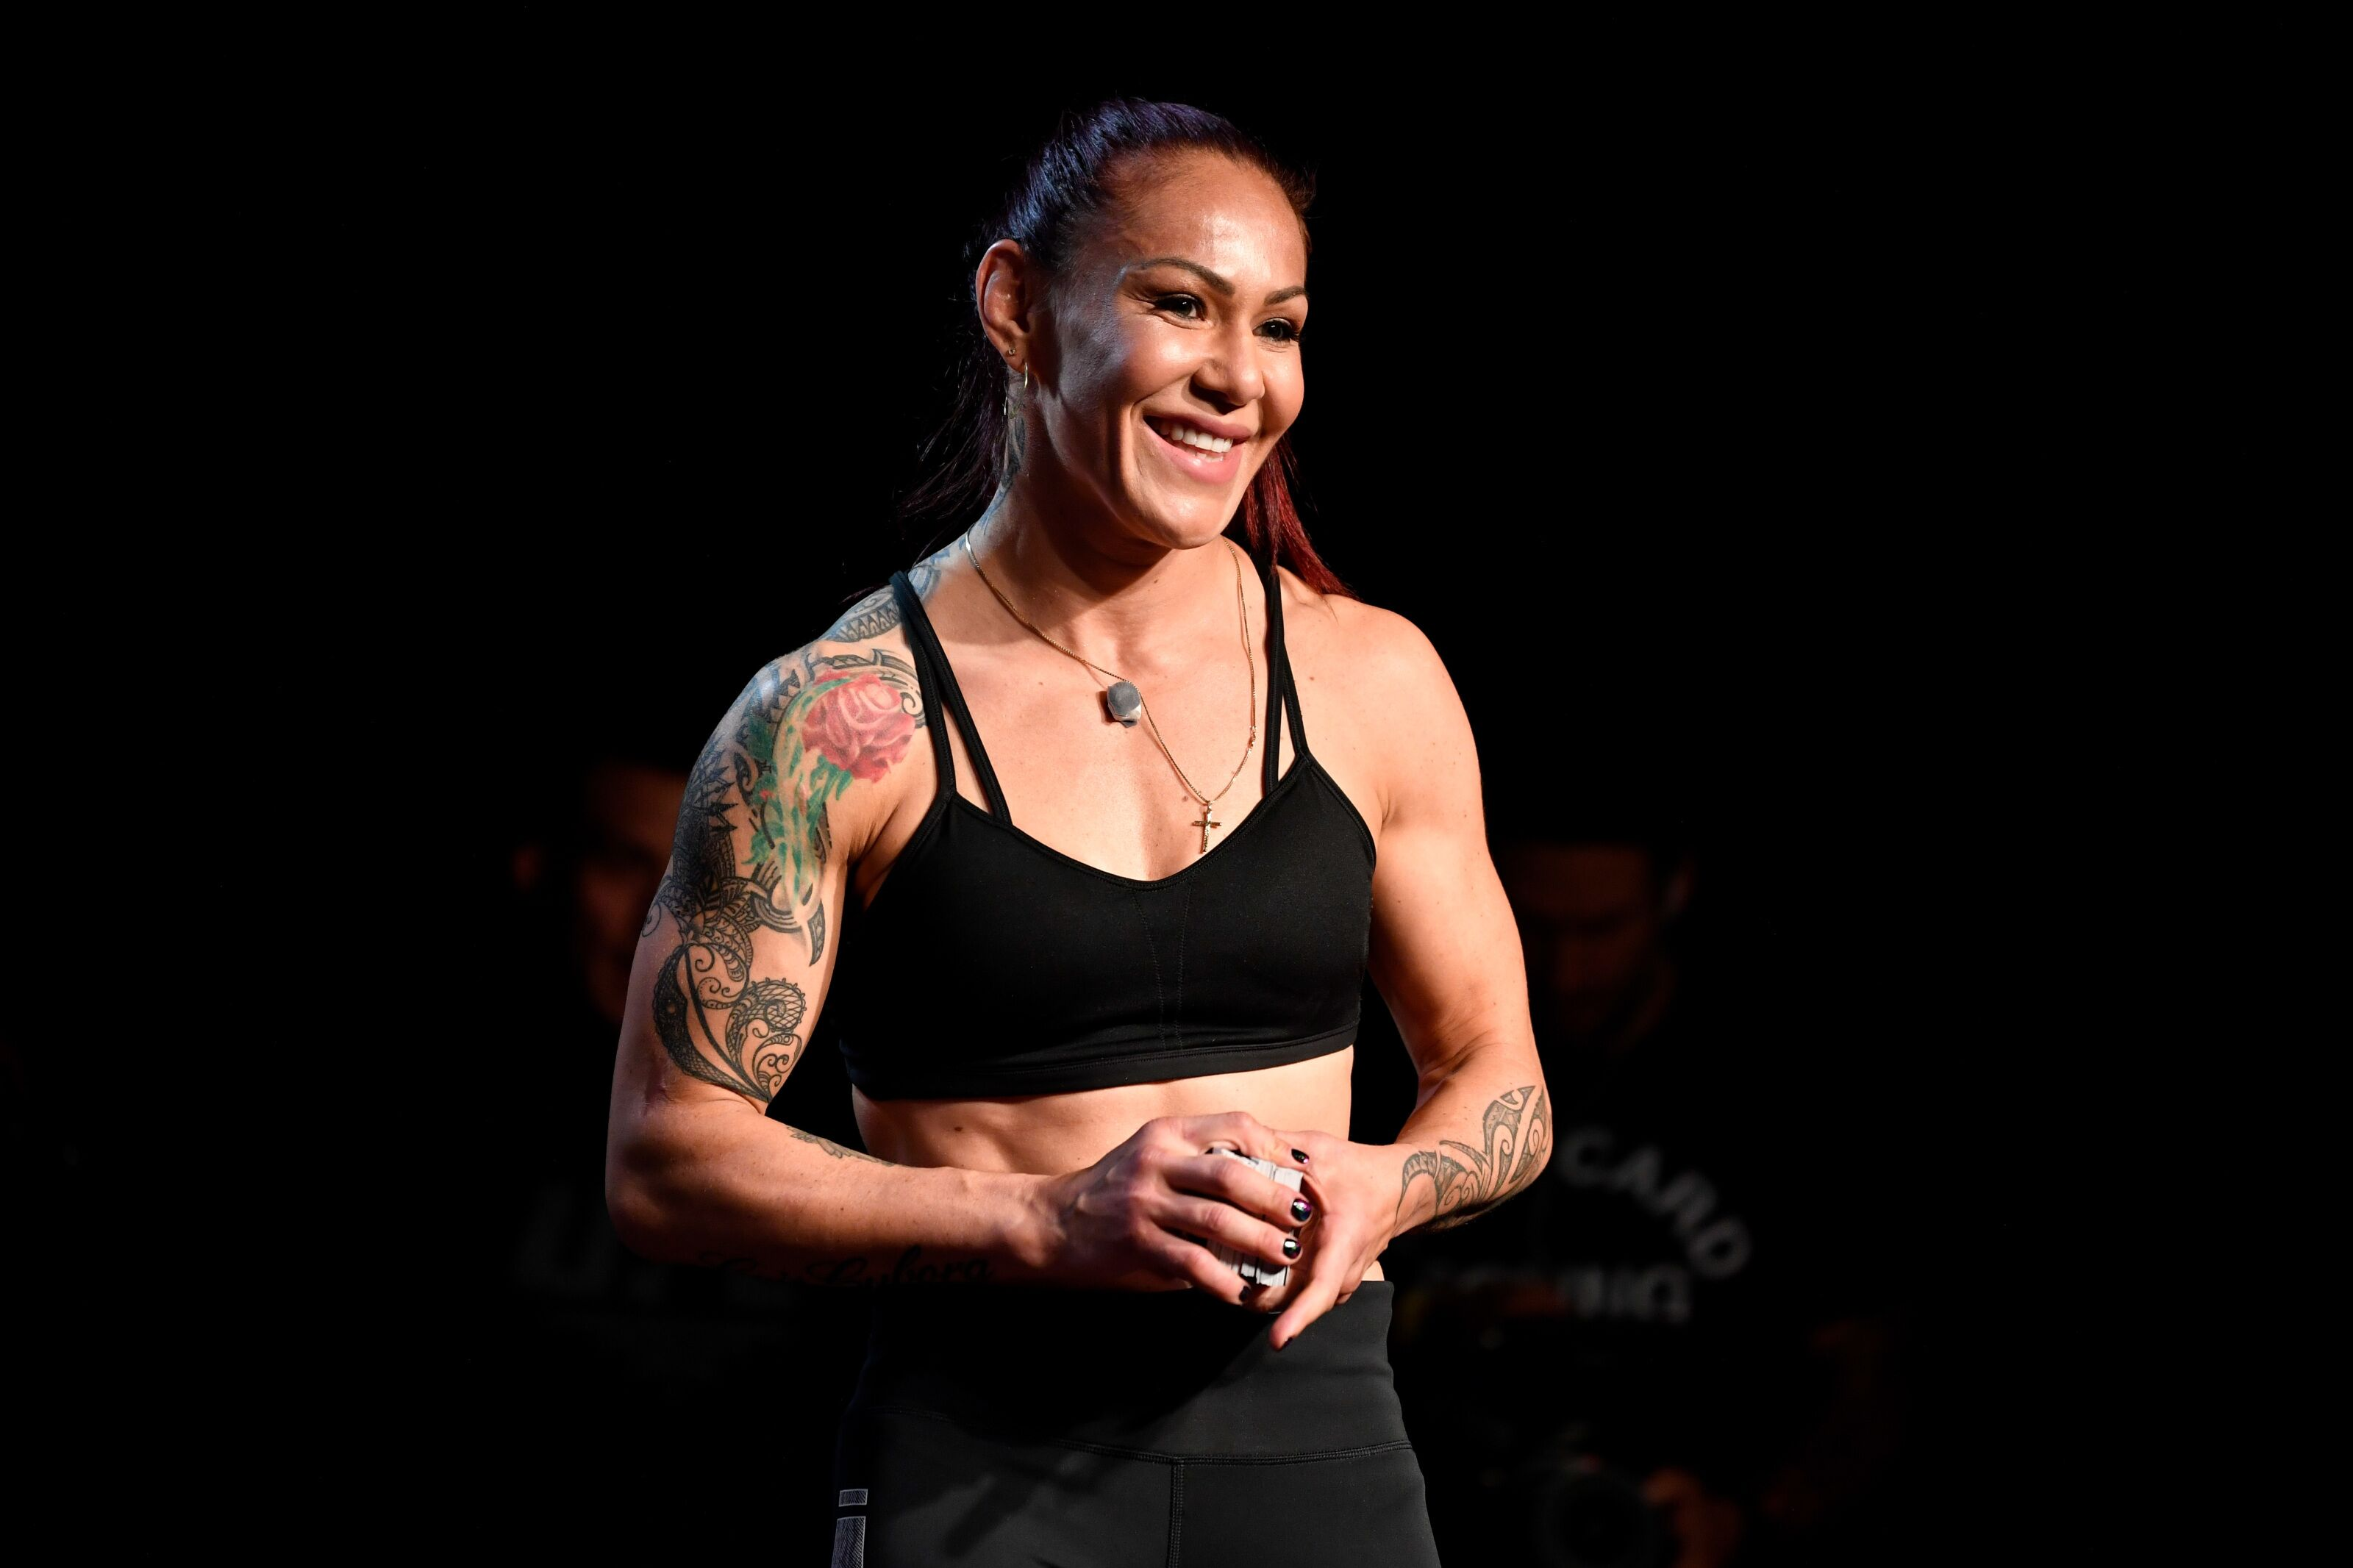 Cris Cyborg signs with Bellator following dramatic departure from UFC